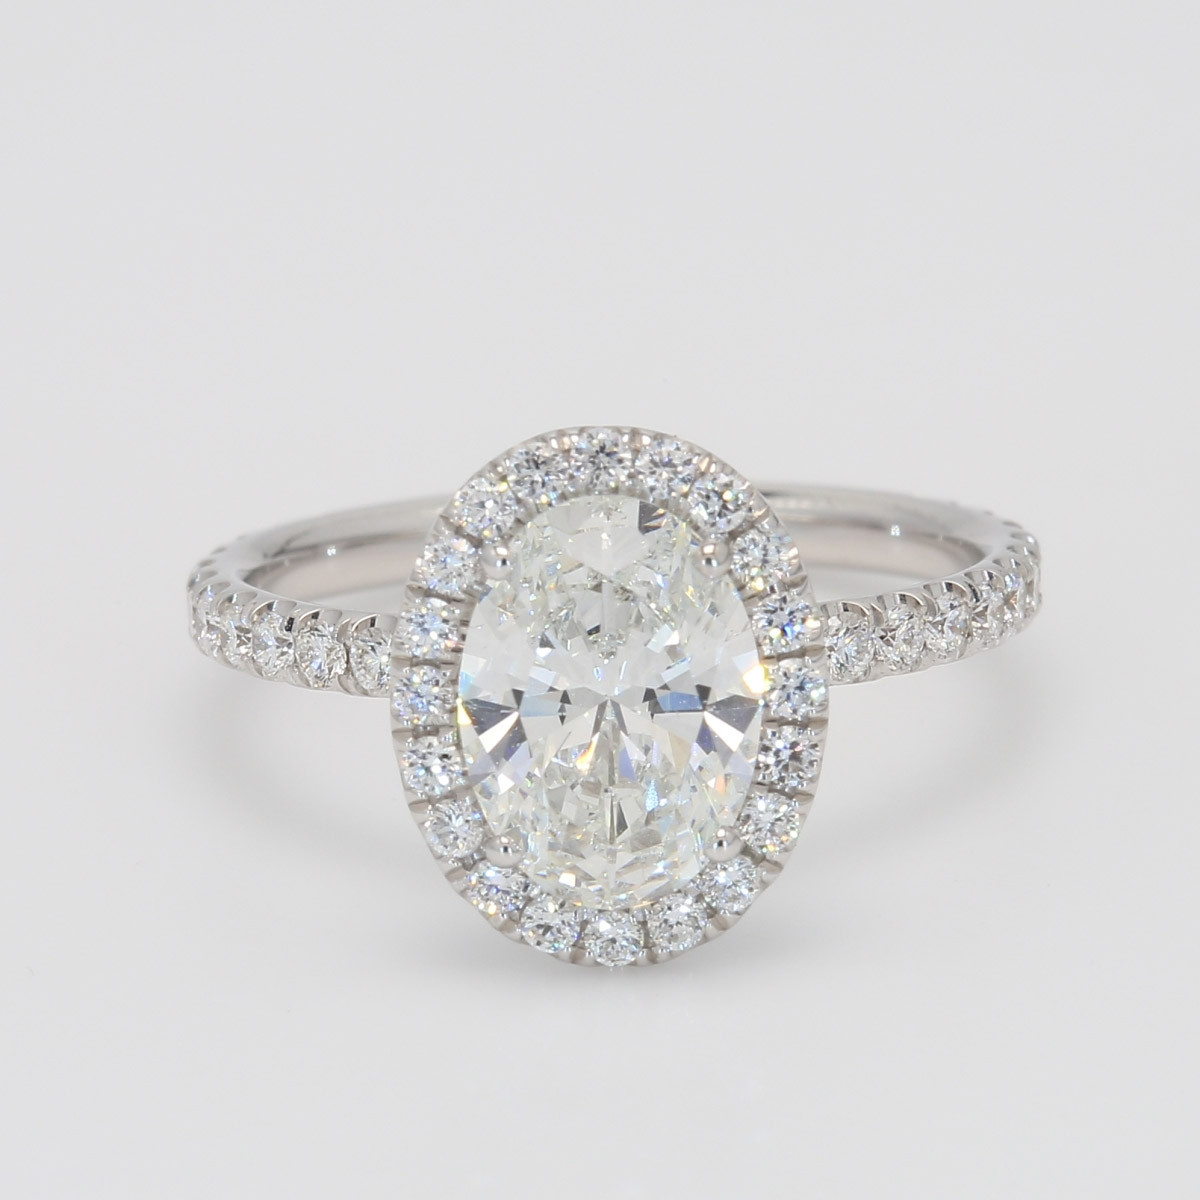 1.71 Carat Oval Halo Diamond Engagement Ring